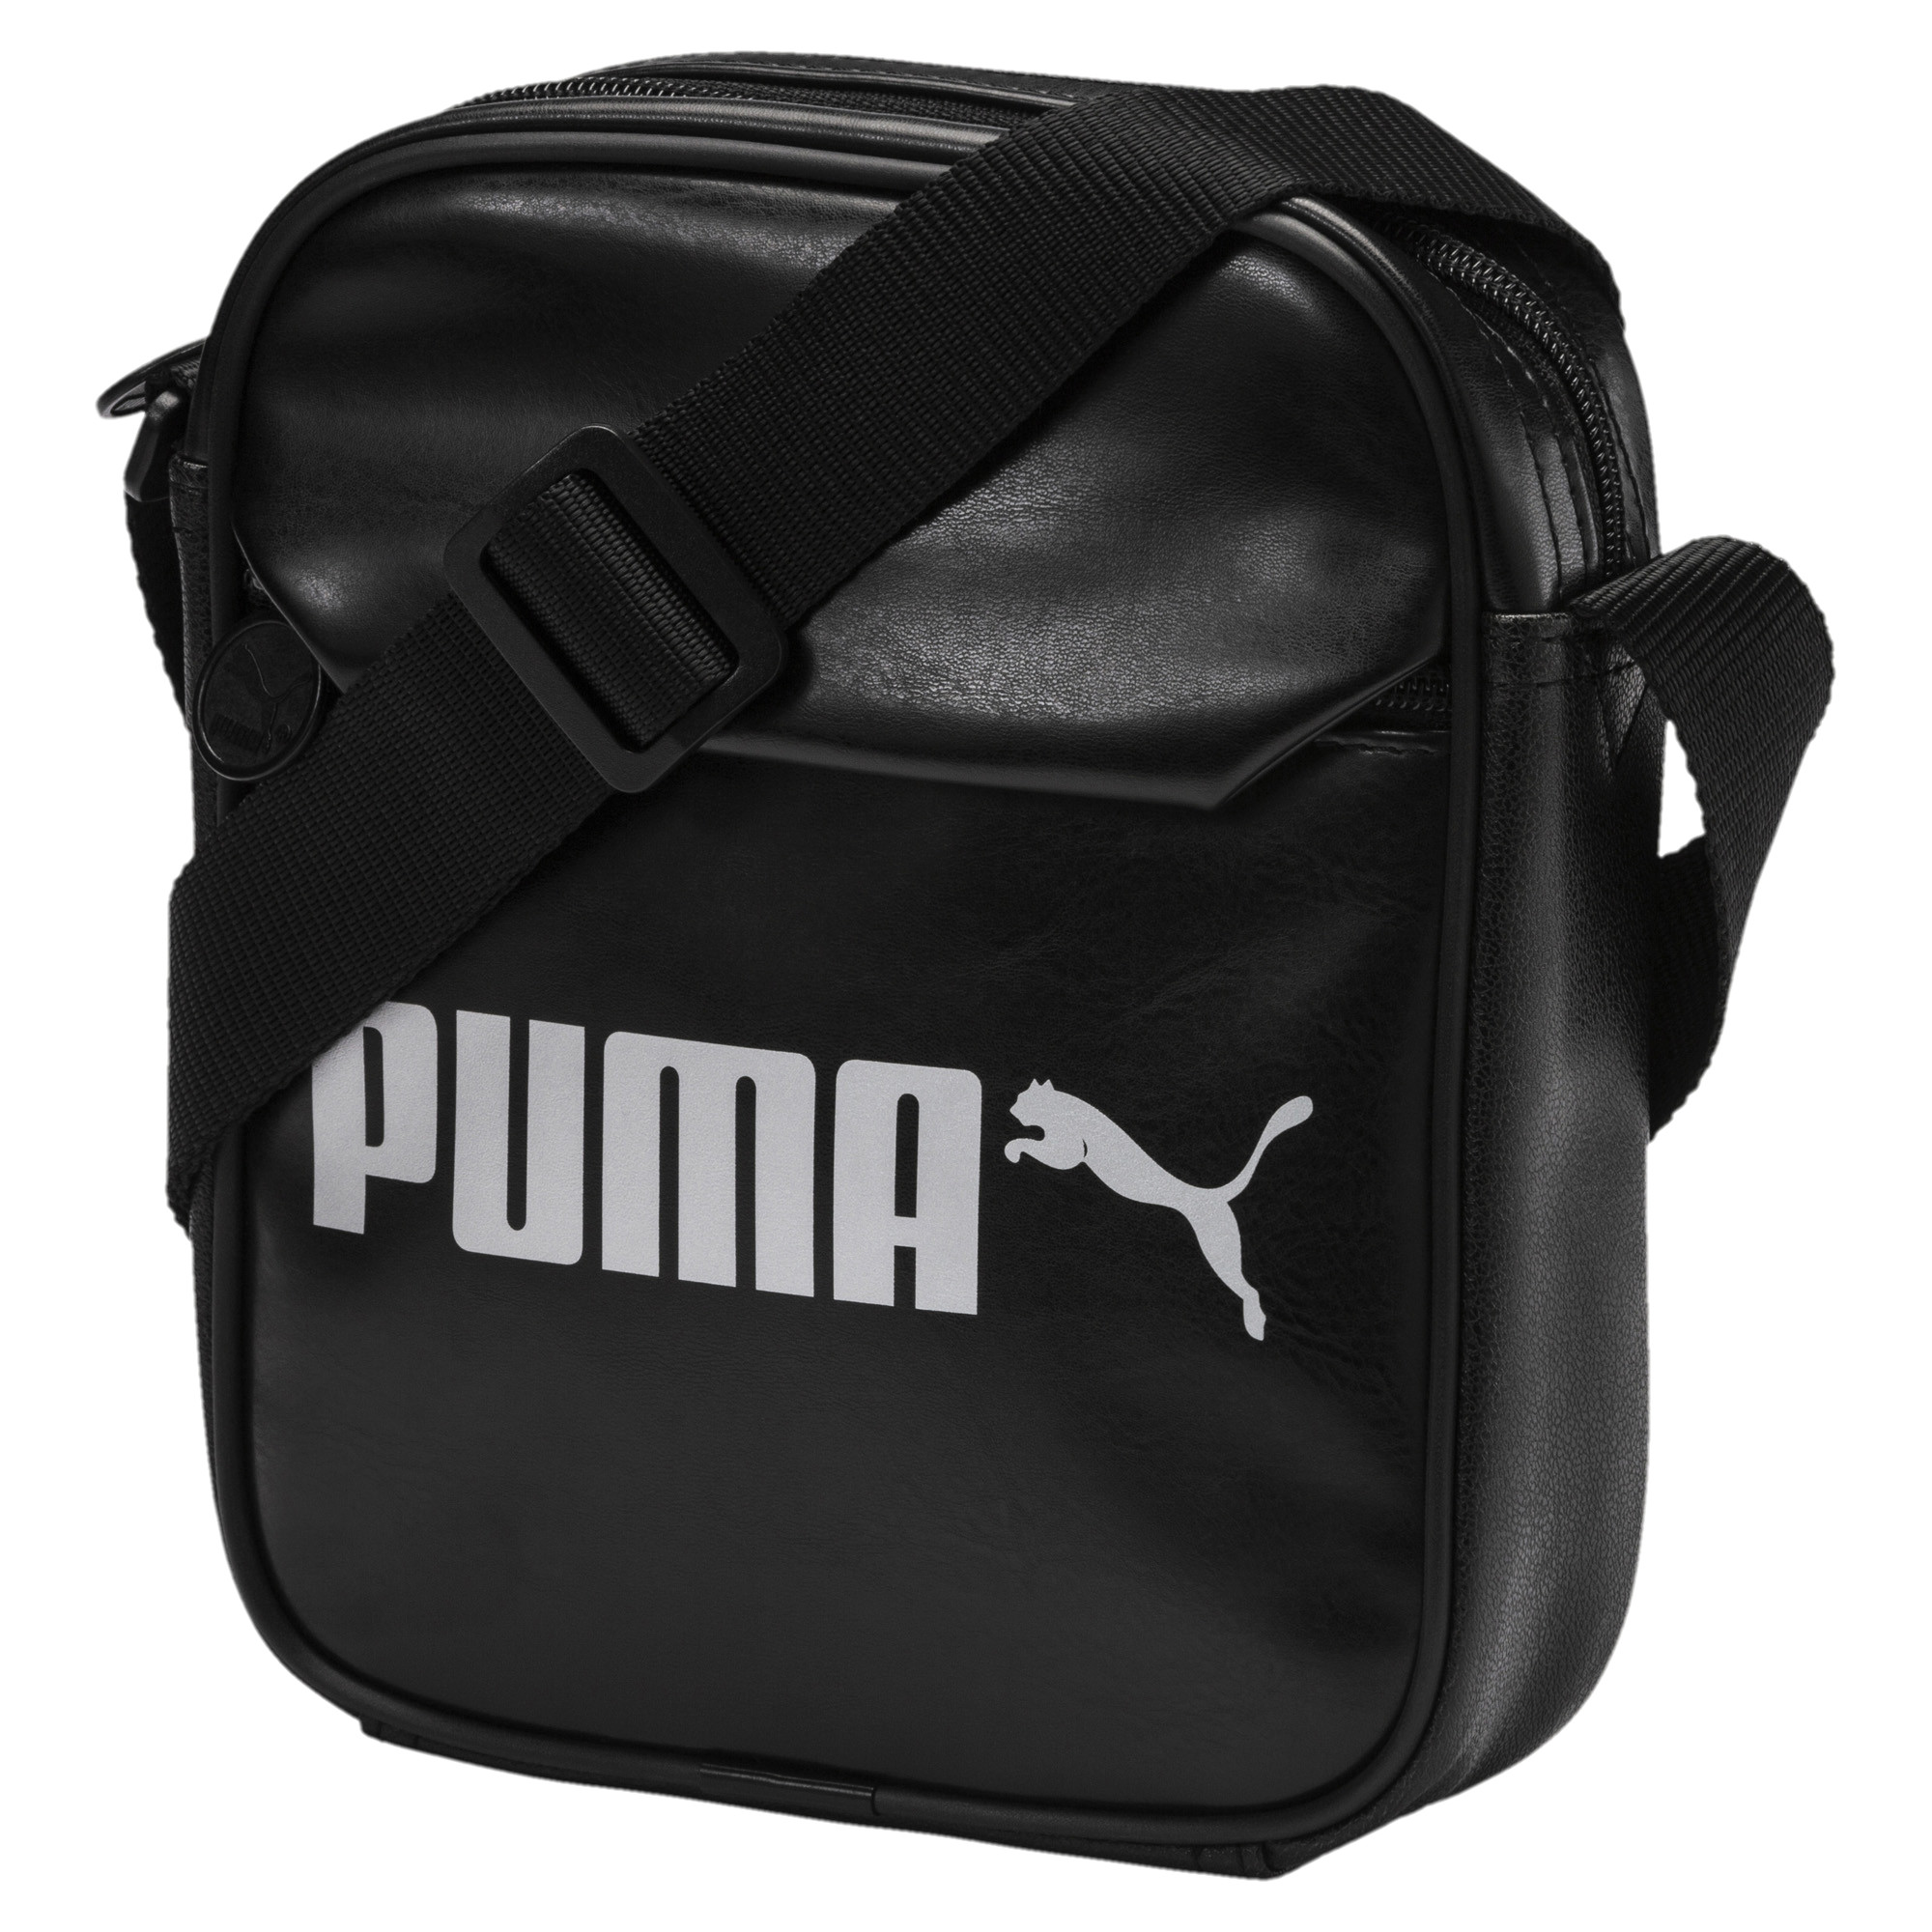 cc706c45a71 Campus Portable Bag | 10 - Black | Puma